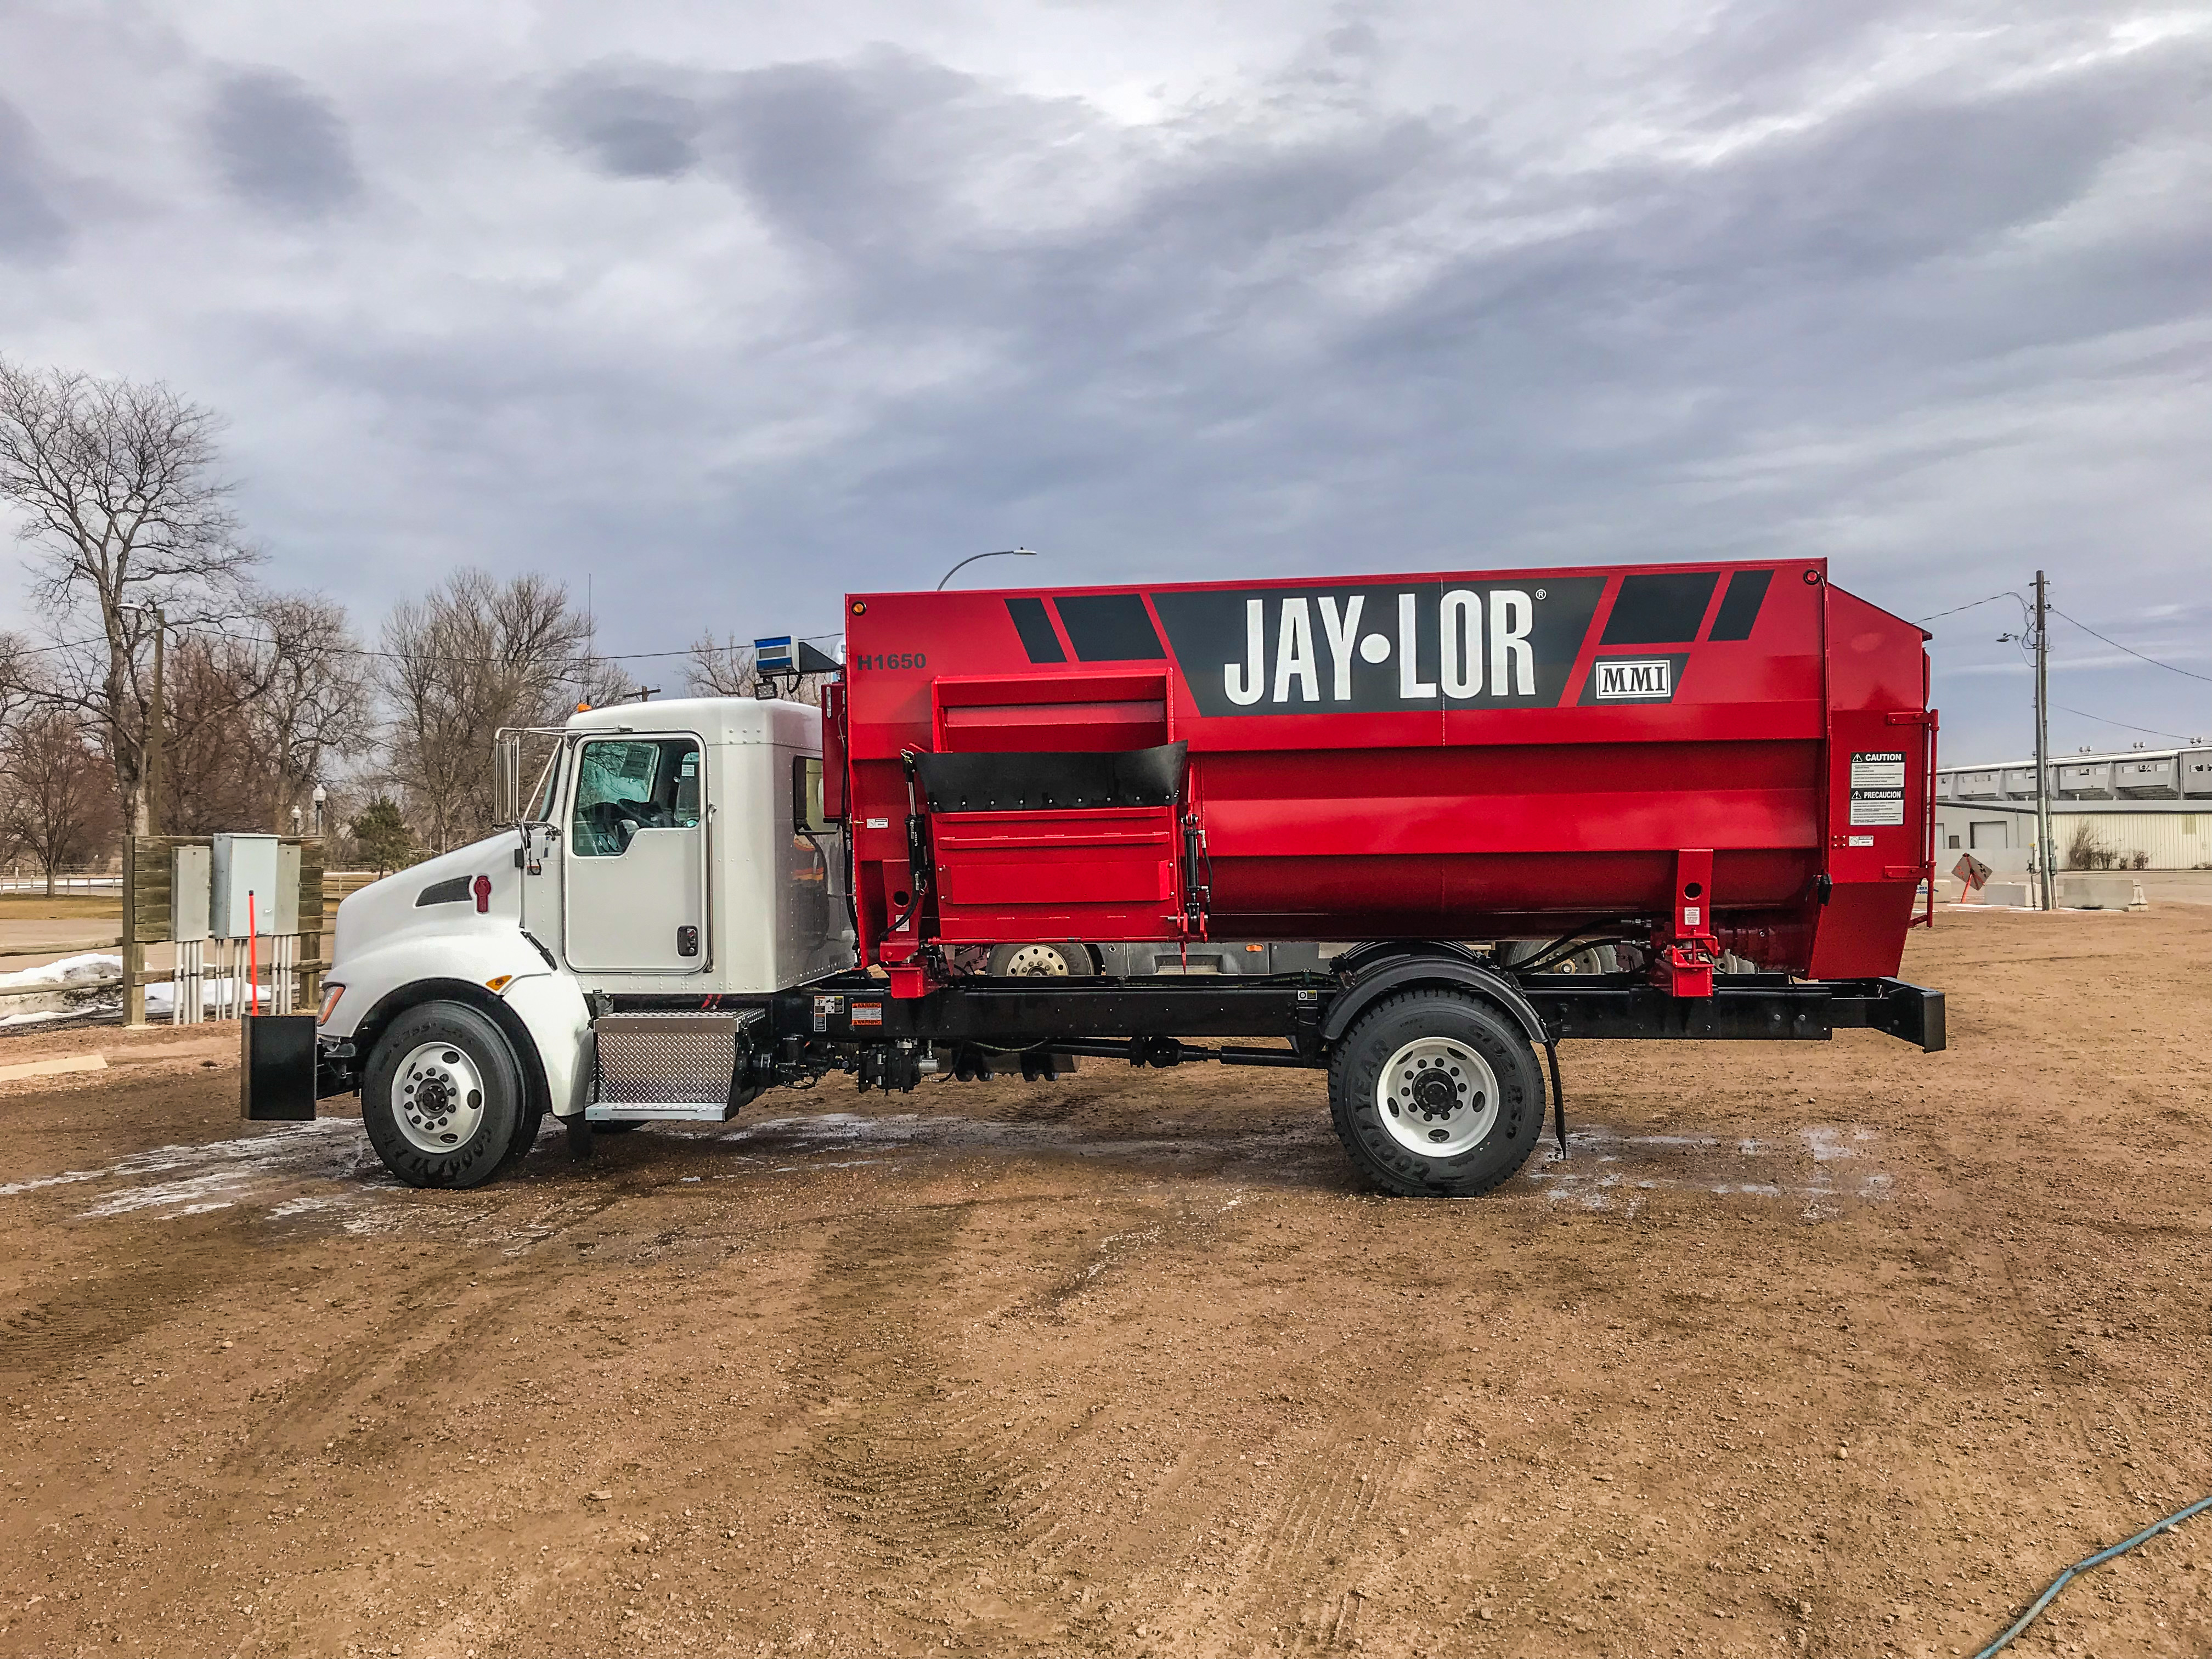 Heavy Equipment Washing Service Areas Include: Fort Collins, Loveland, Windsor, Greeley, Longmont, Berthoud, Estes Park, Wellington, Cheyenne Wyoming and surrounding areas